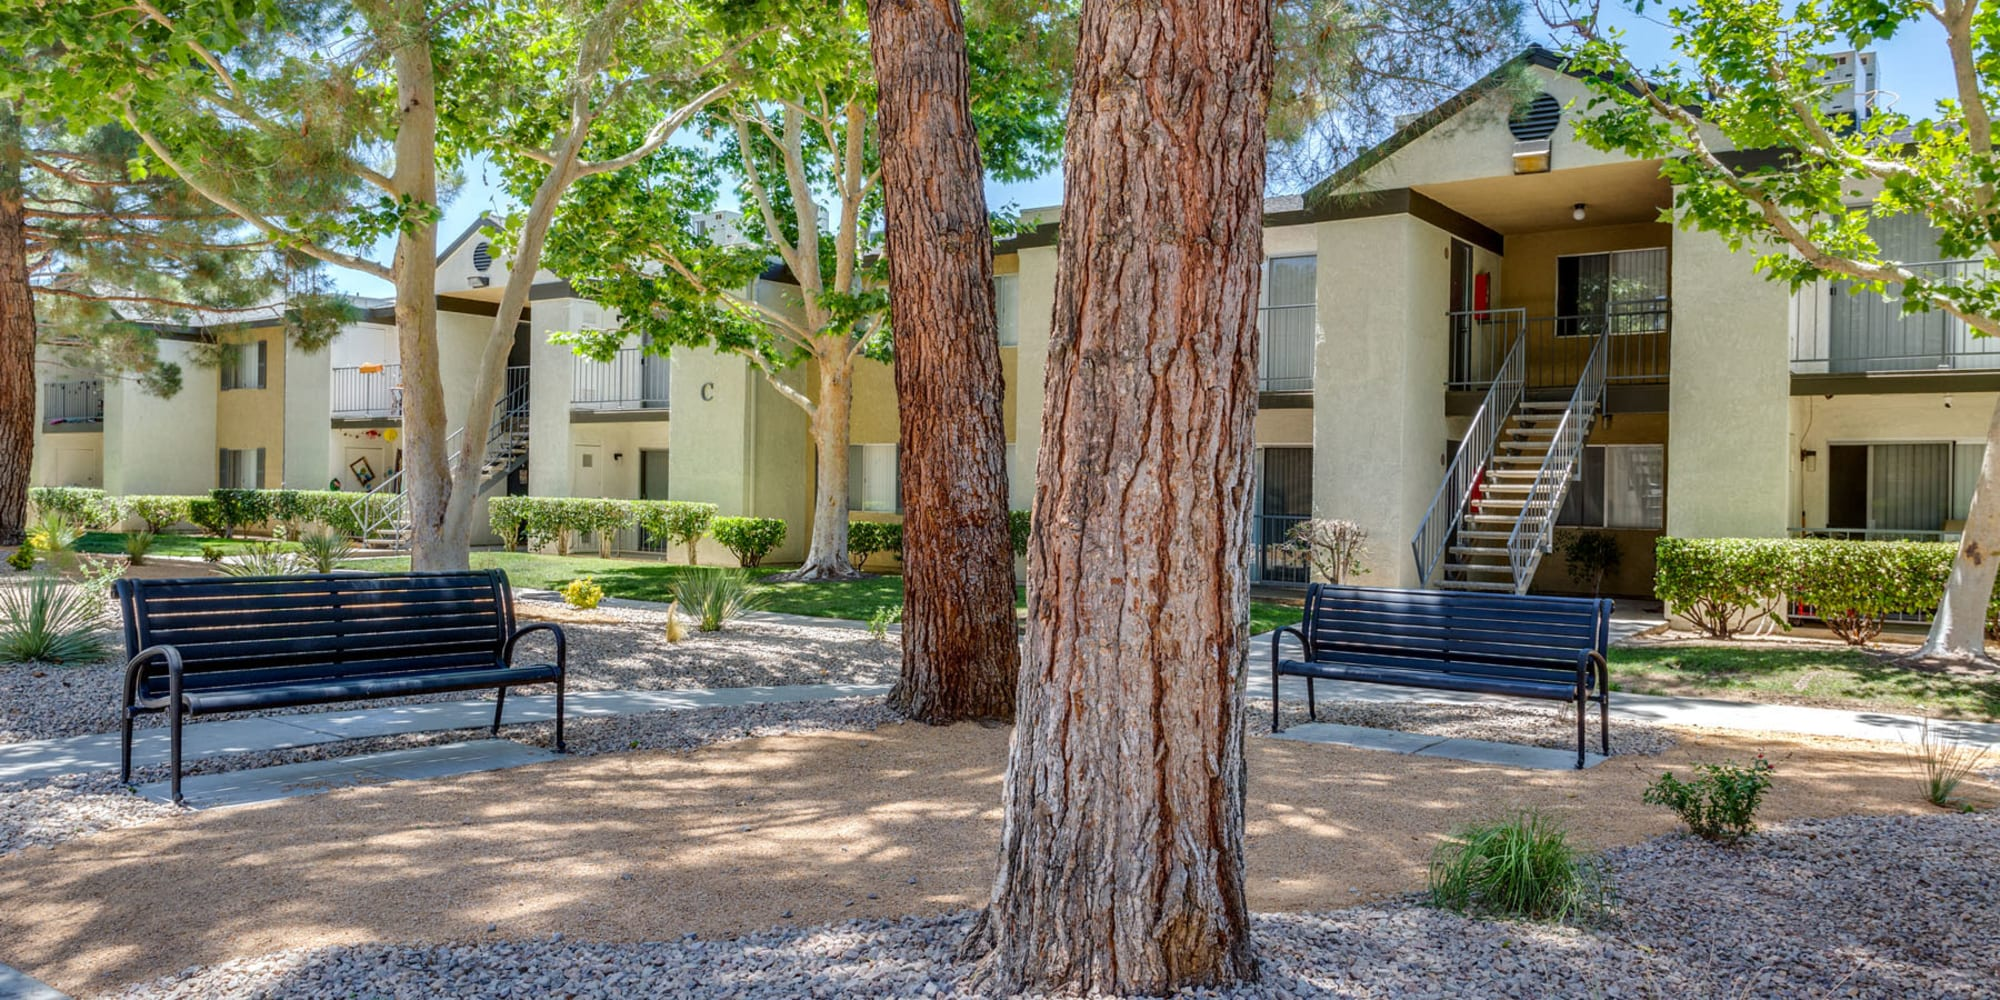 Park-like setting at a community courtyard at Mountain Vista in Victorville, California